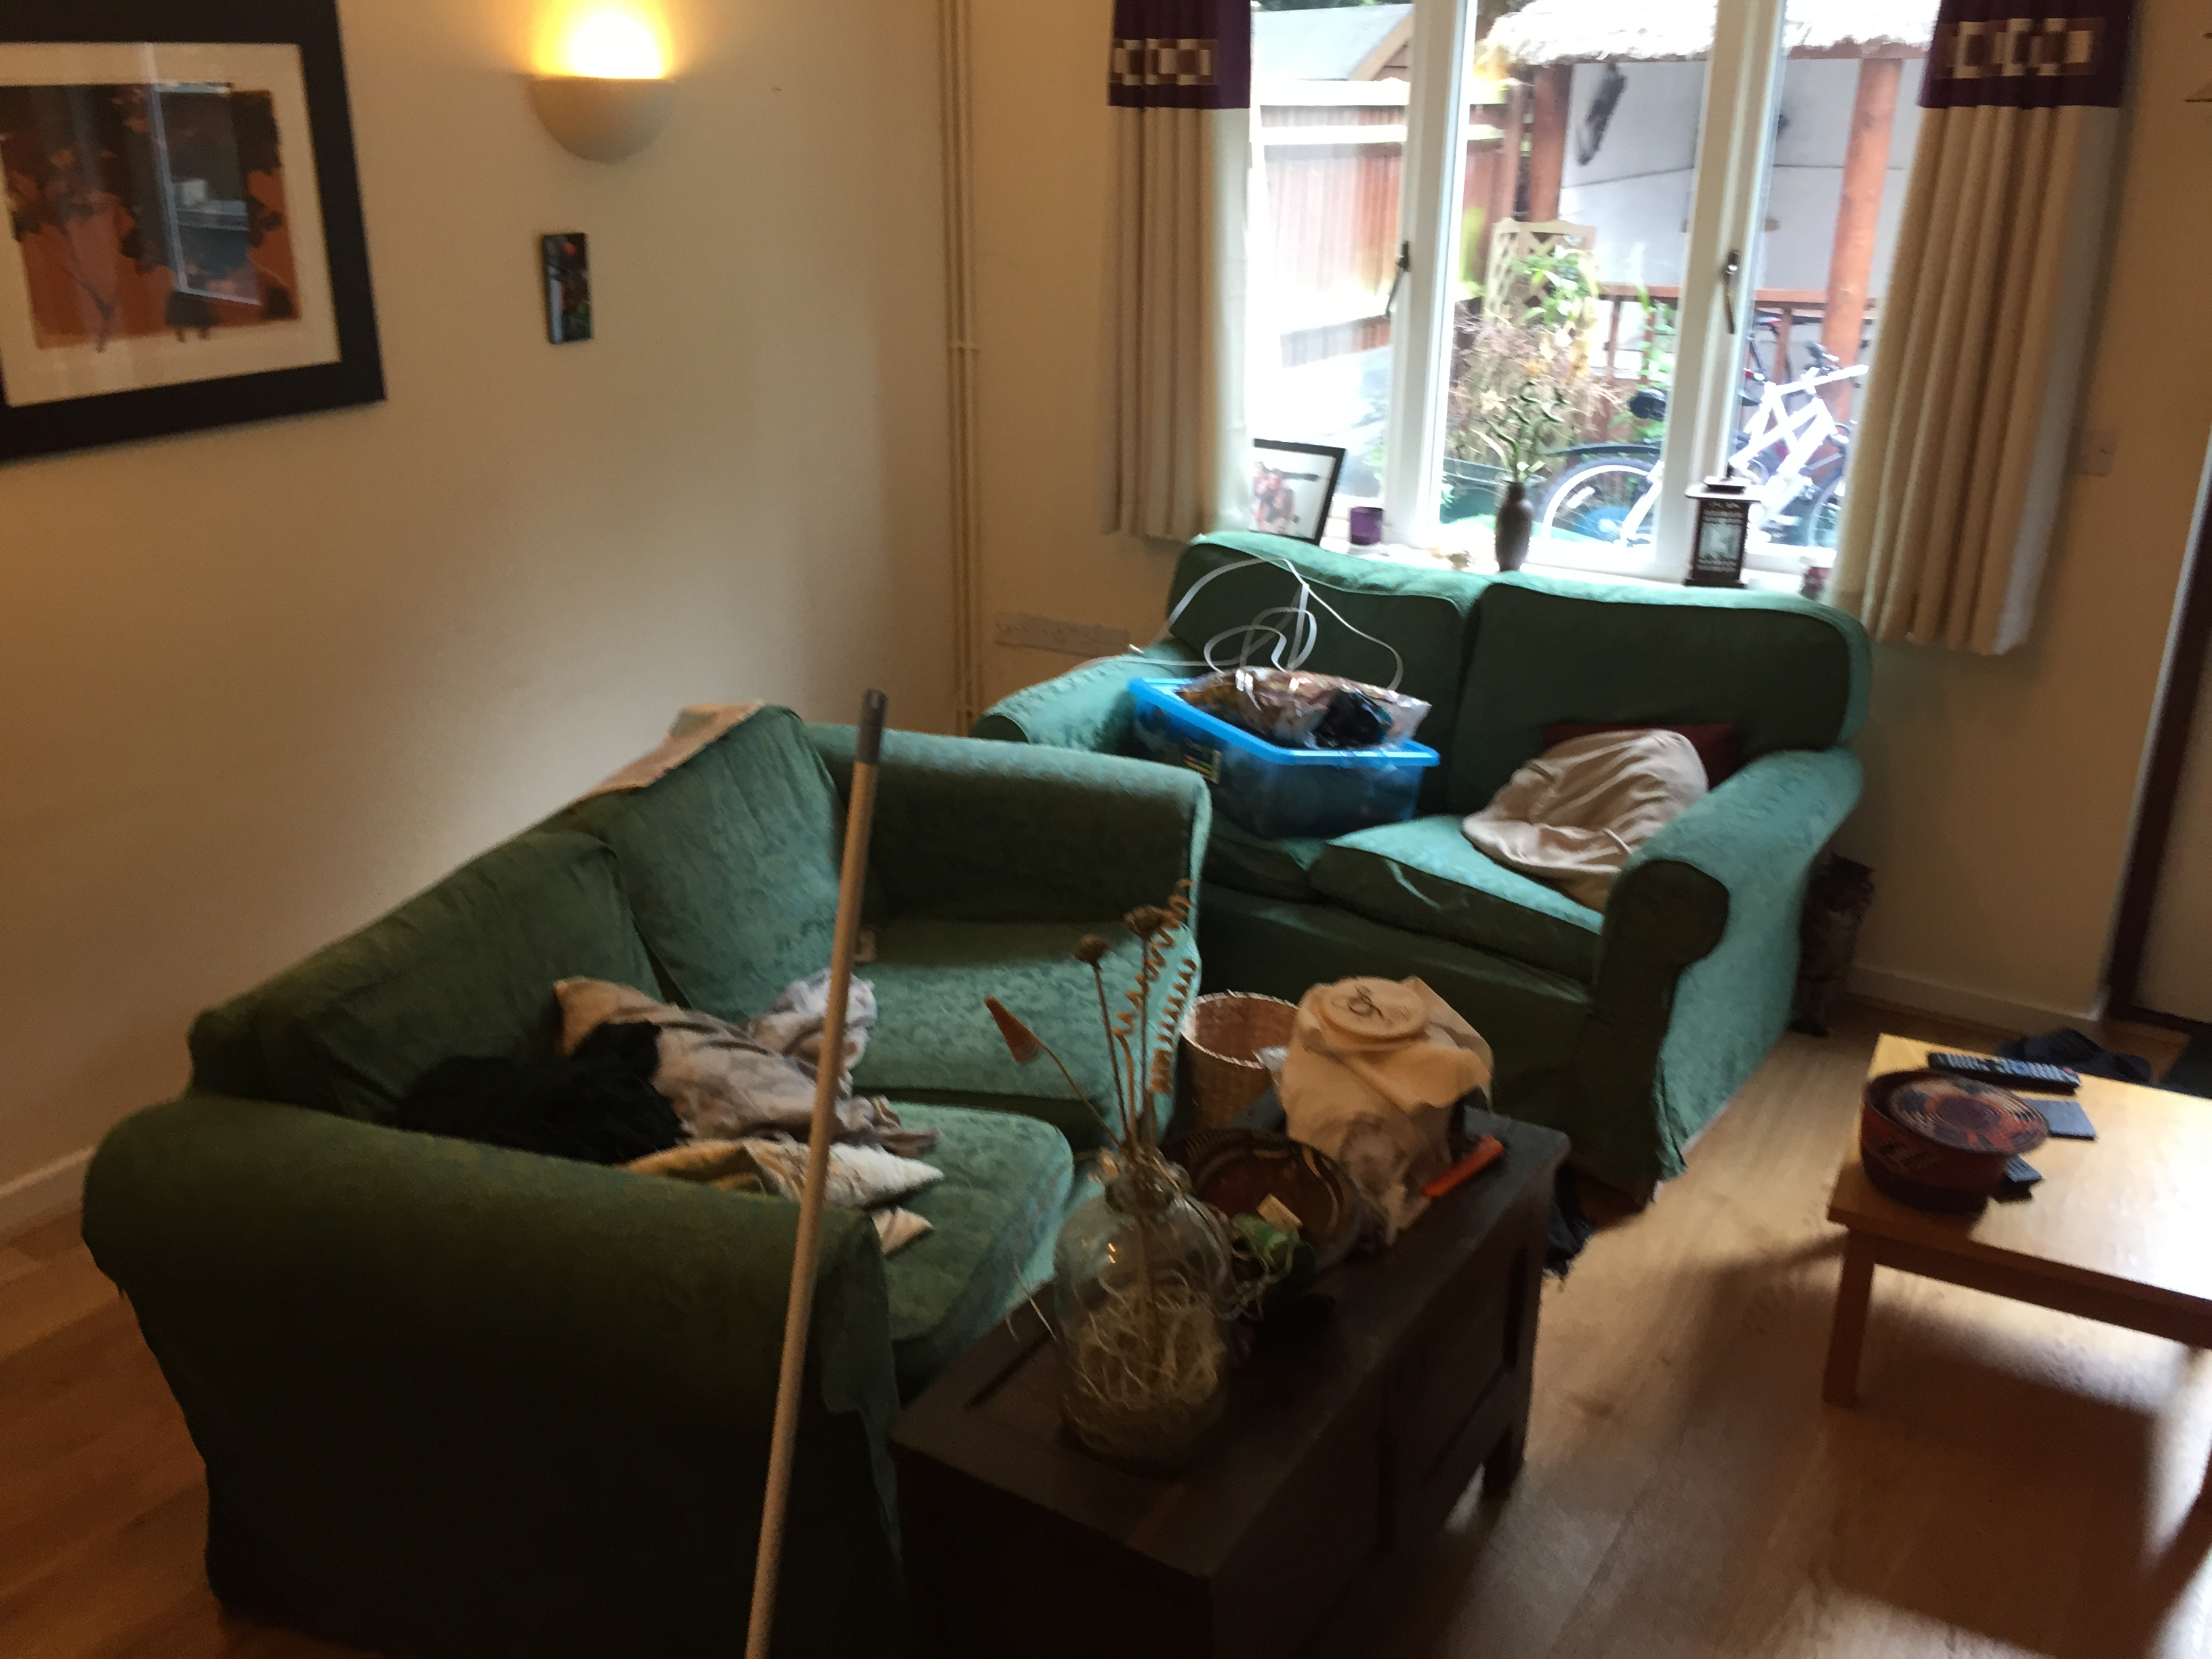 Living room makeover…   Had we but world enough and time...